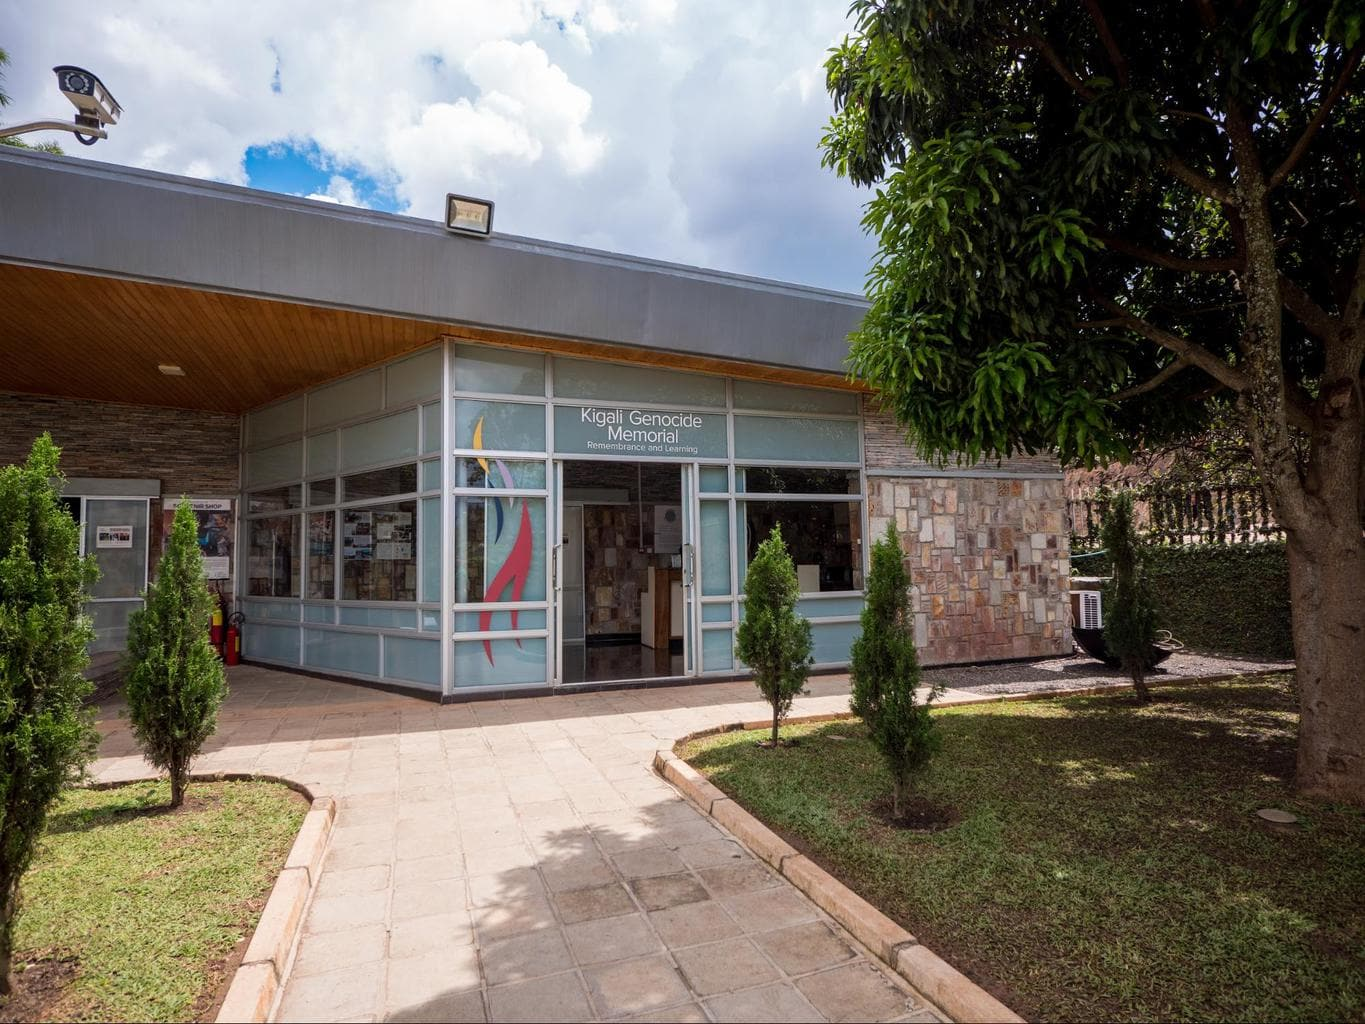 Entrance to the Kigali Genocide Memorial